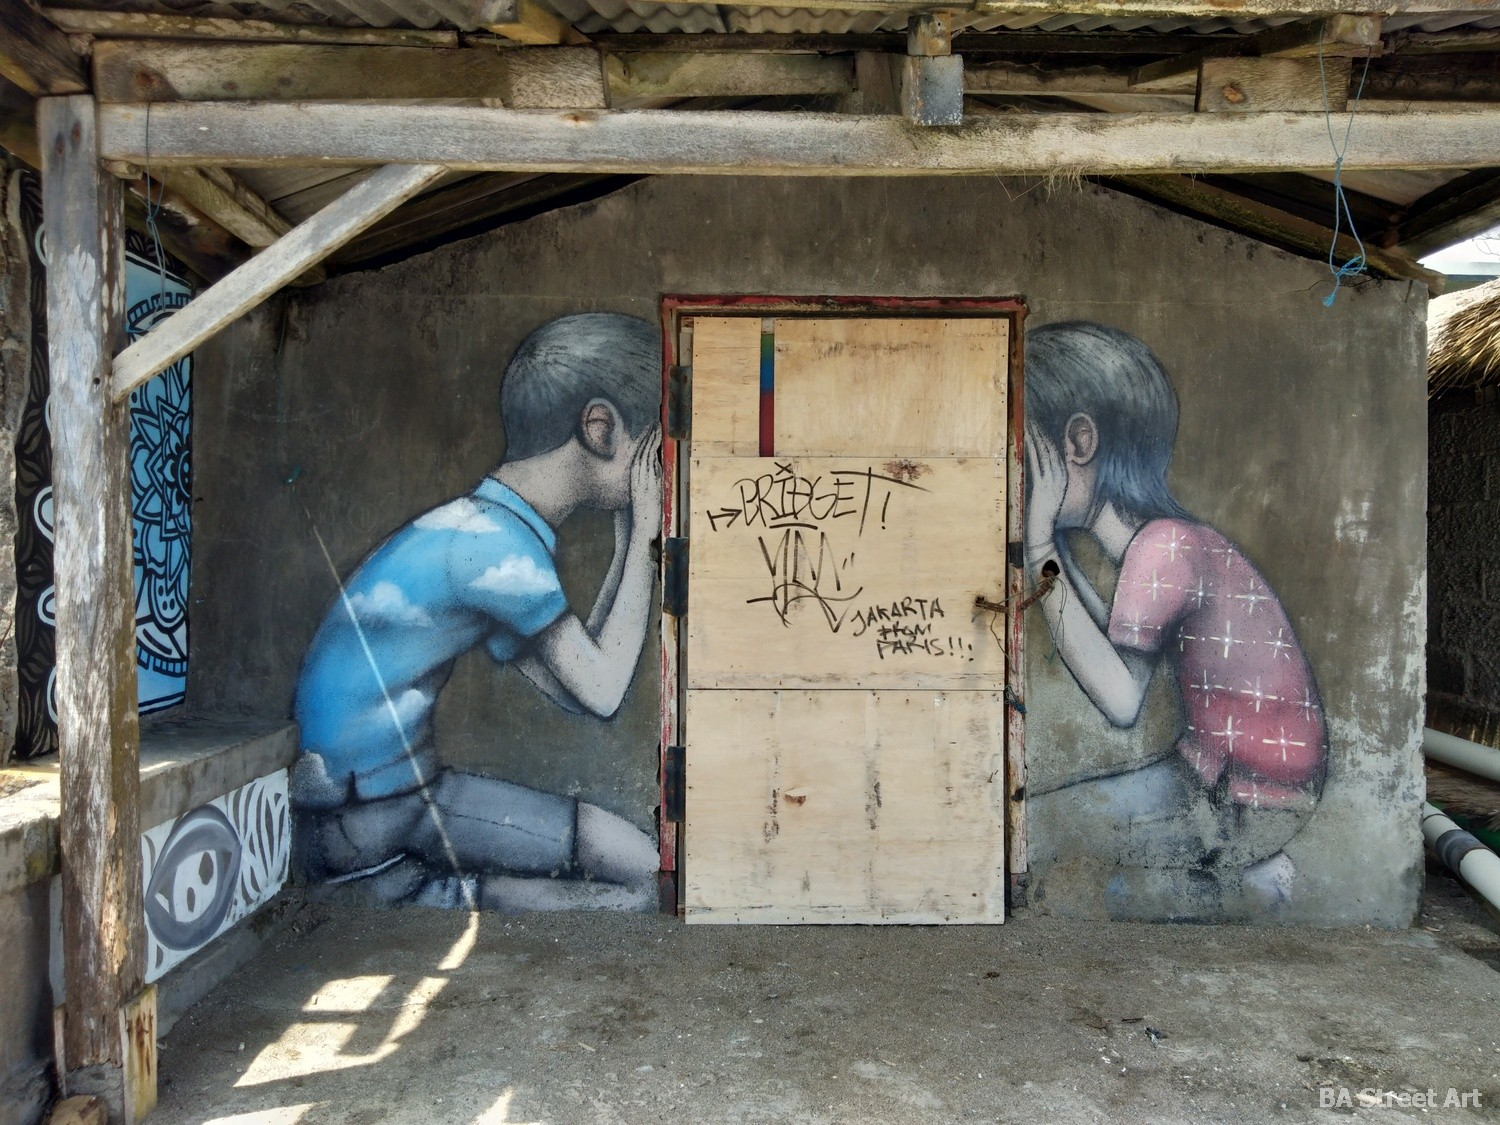 seth globepainter street art mural bali indonesia canggu netalayan beach urban art shack but kids buenosairesstreetart.com